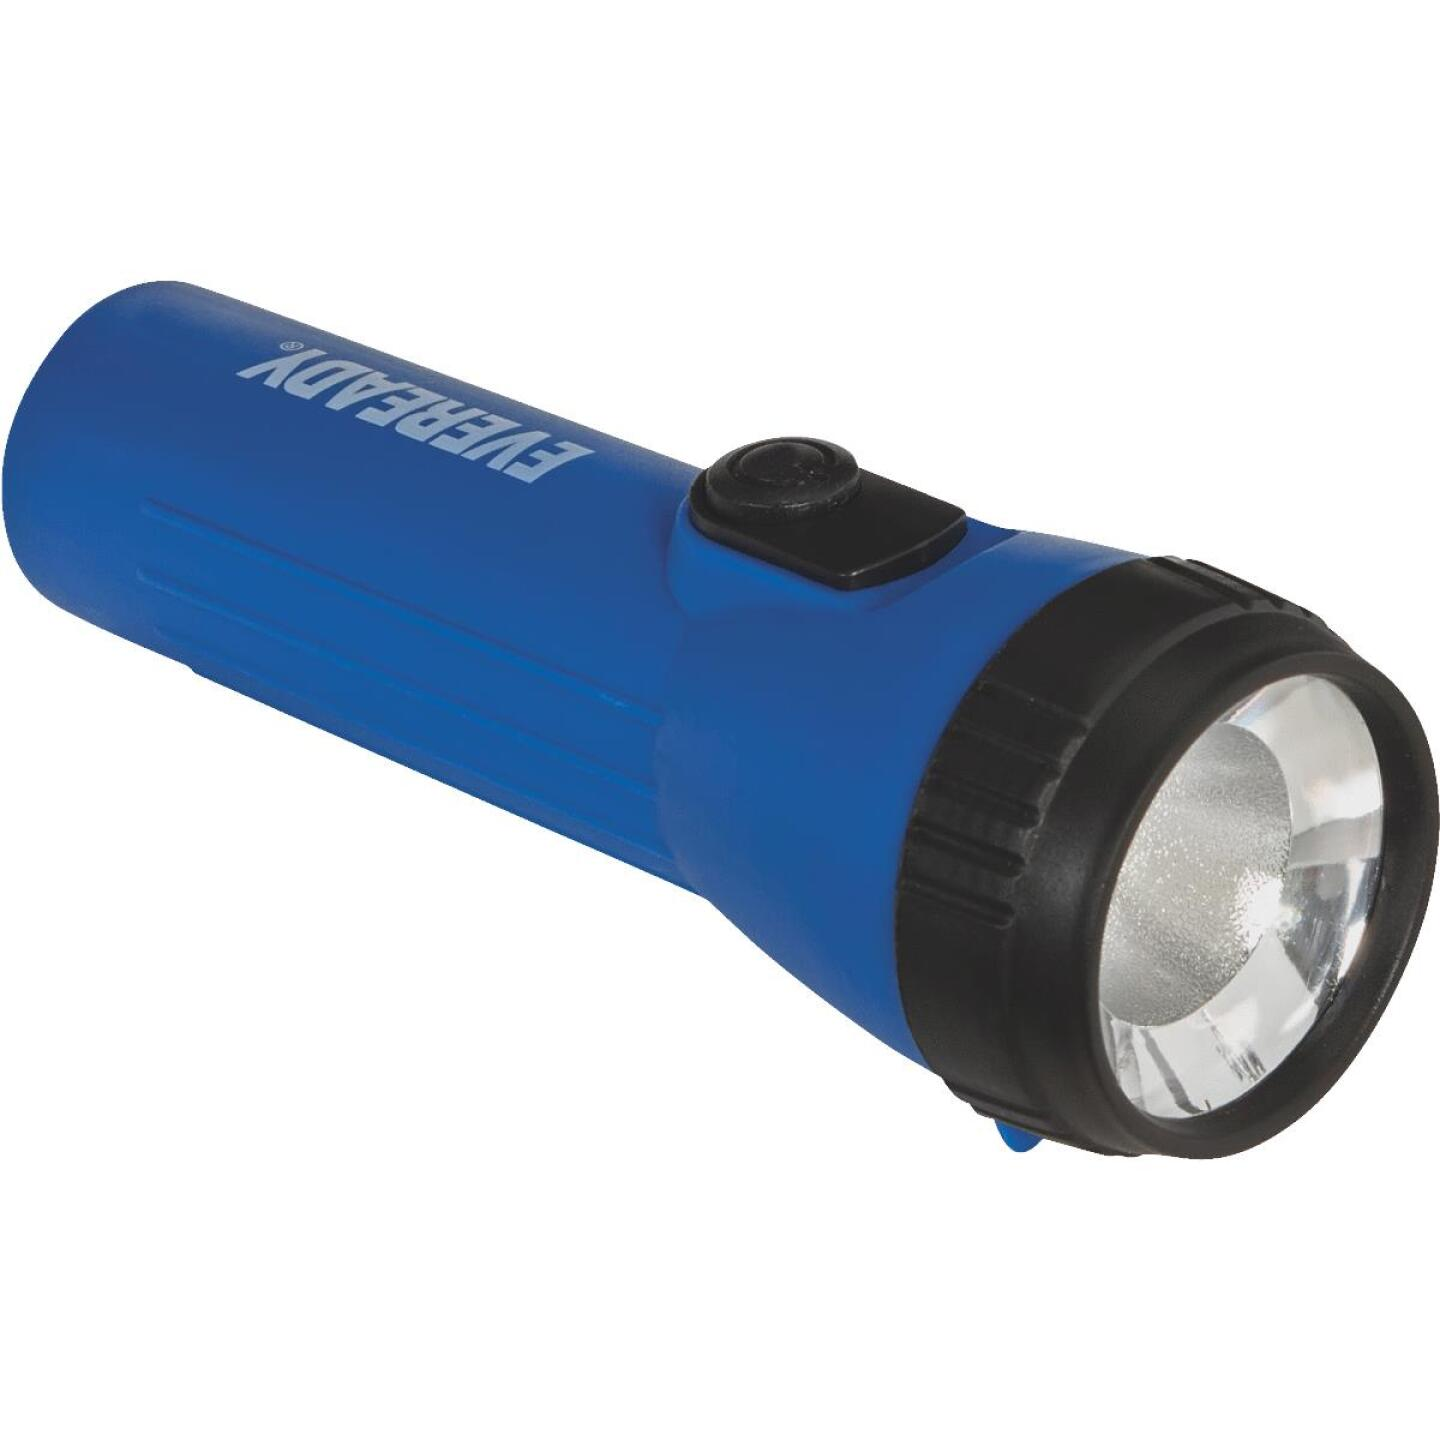 Eveready LED Red Economy Flashlight Image 4